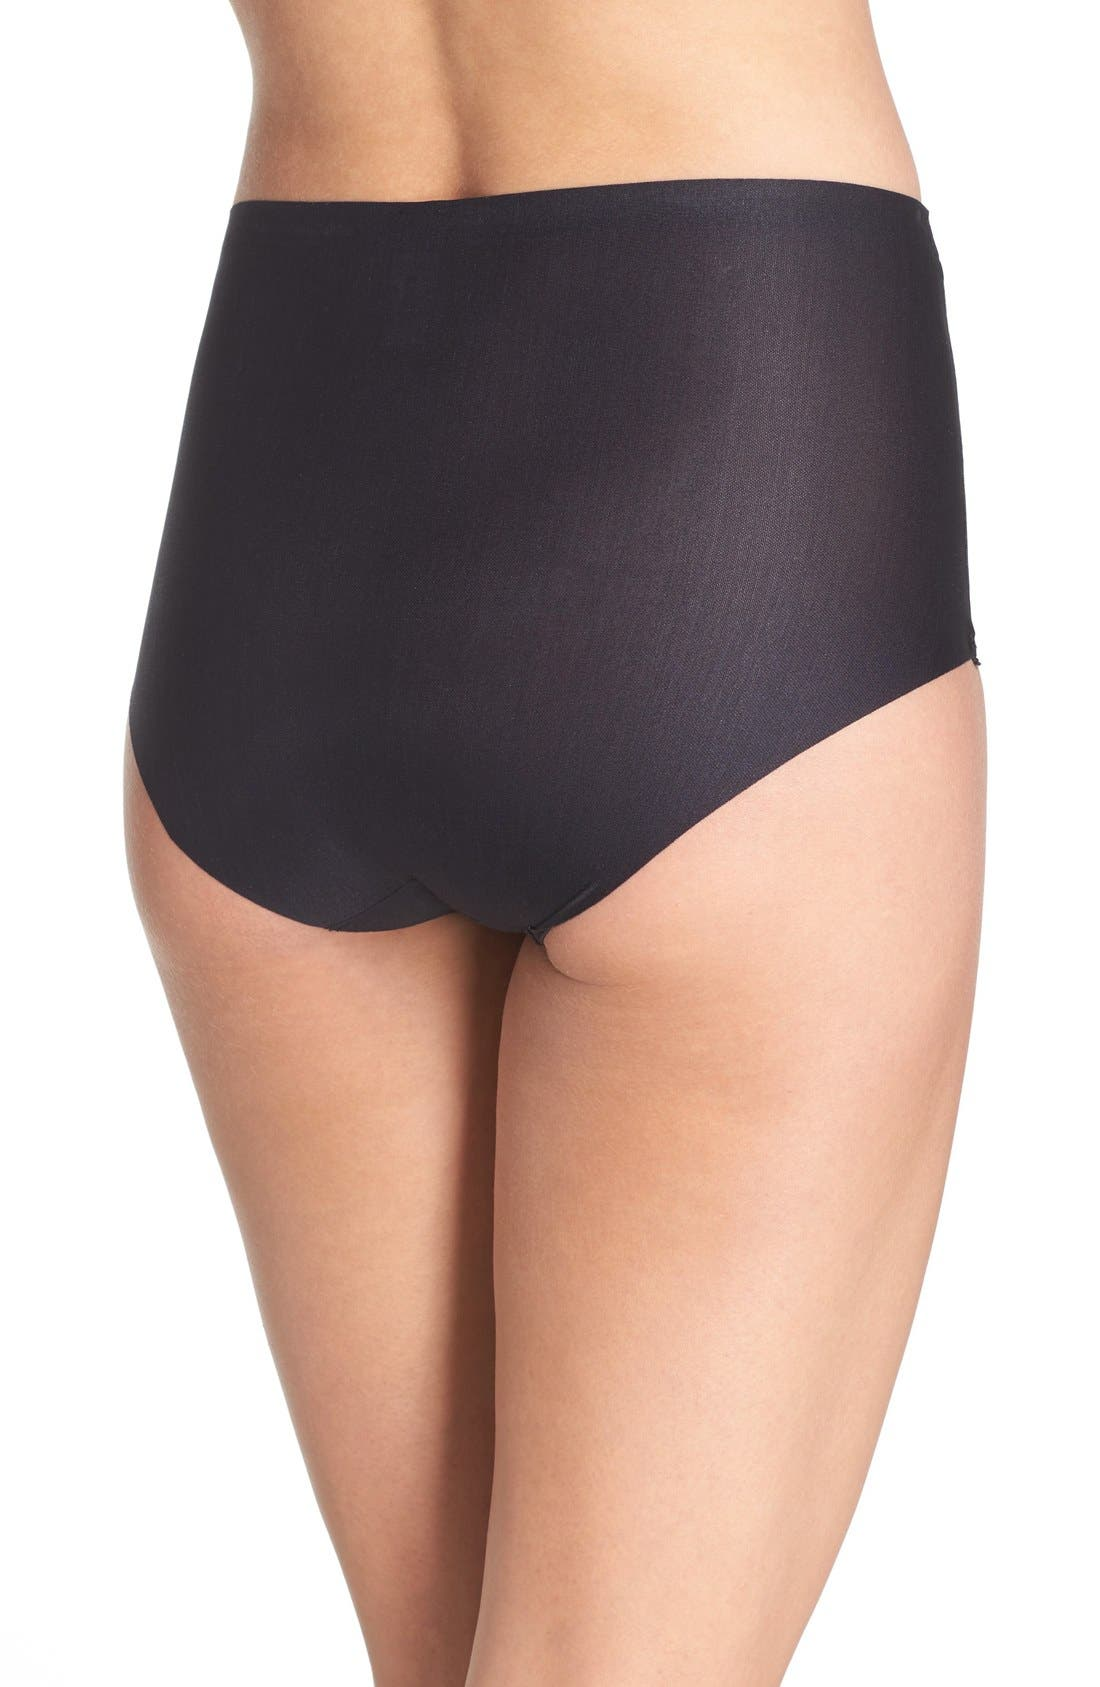 High Waist Smoothing Briefs,                             Alternate thumbnail 3, color,                             BLACK